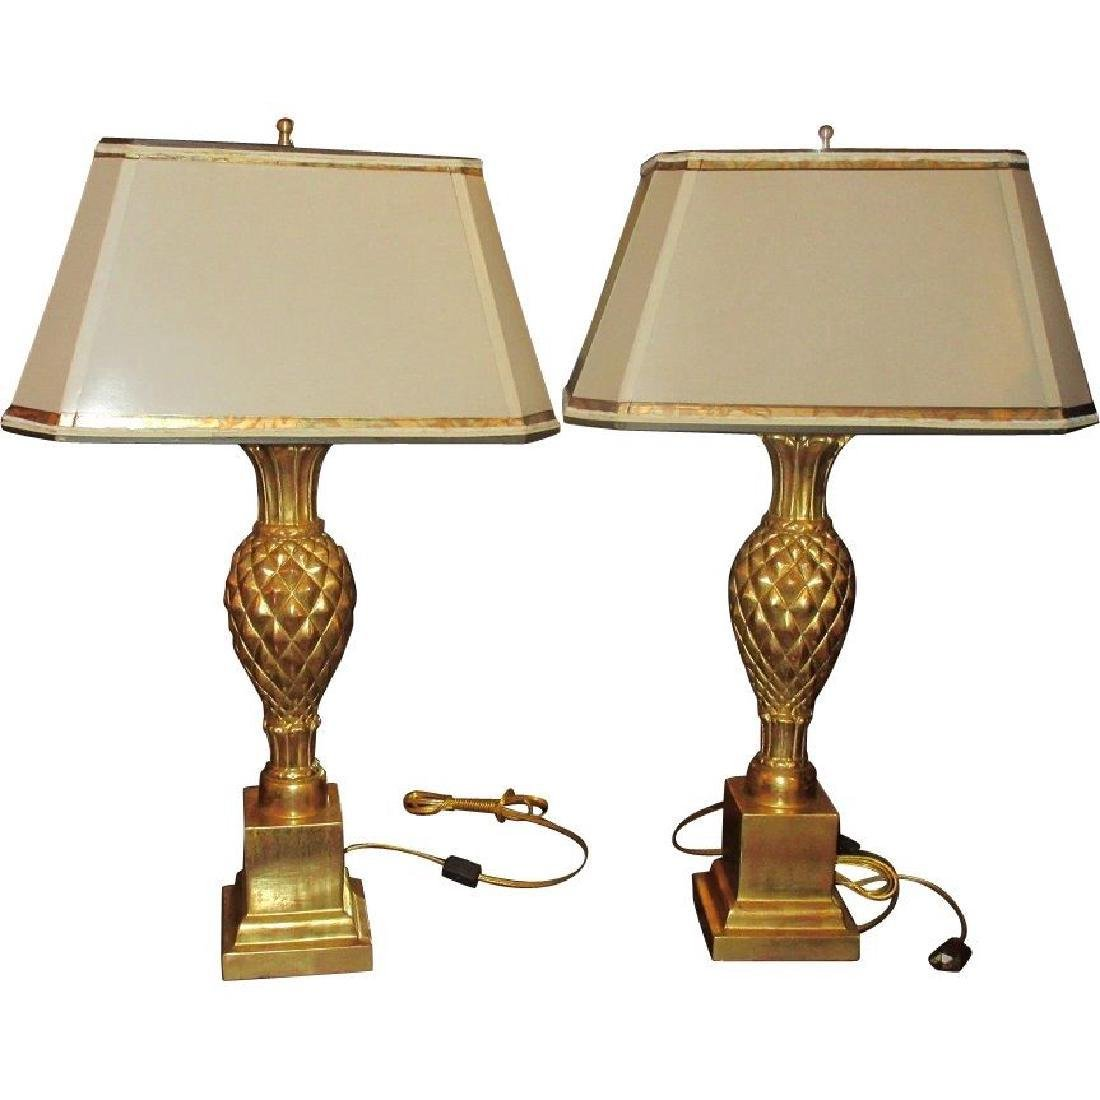 Pair Thomas Morgan Table Lamps with Pineapple Bases